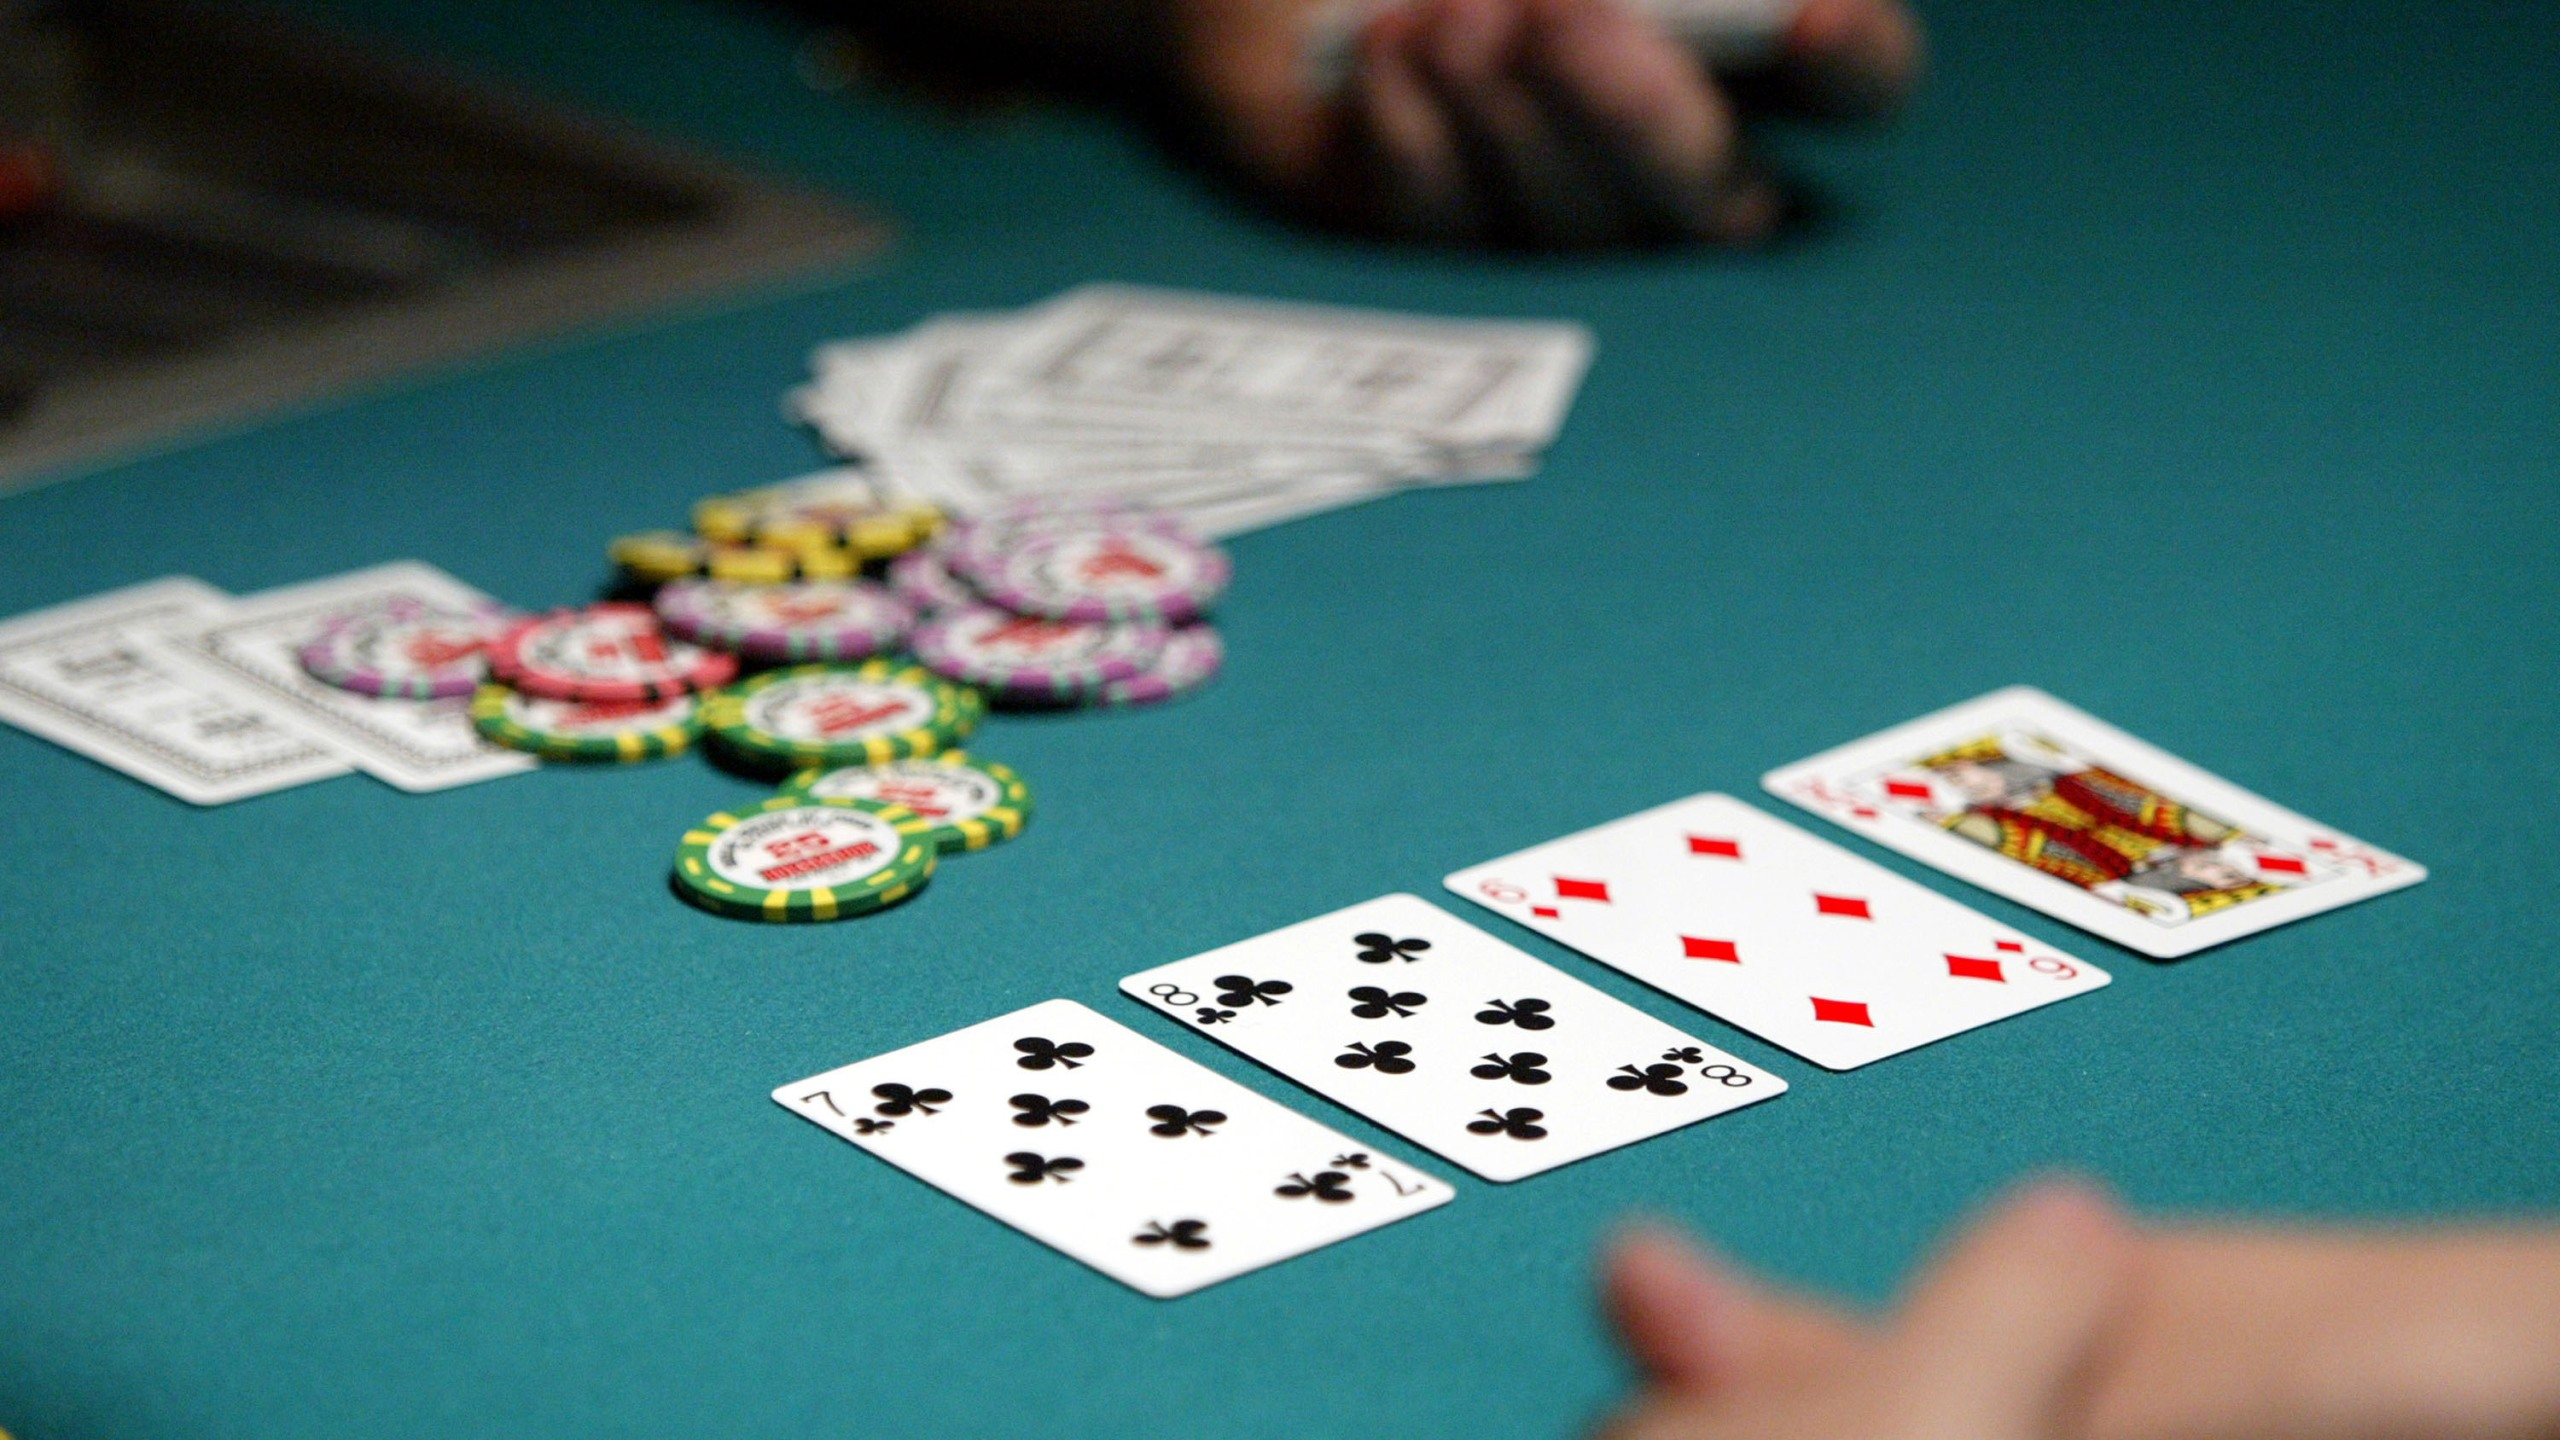 Kansas man pleads guilty to playing illegal poker games